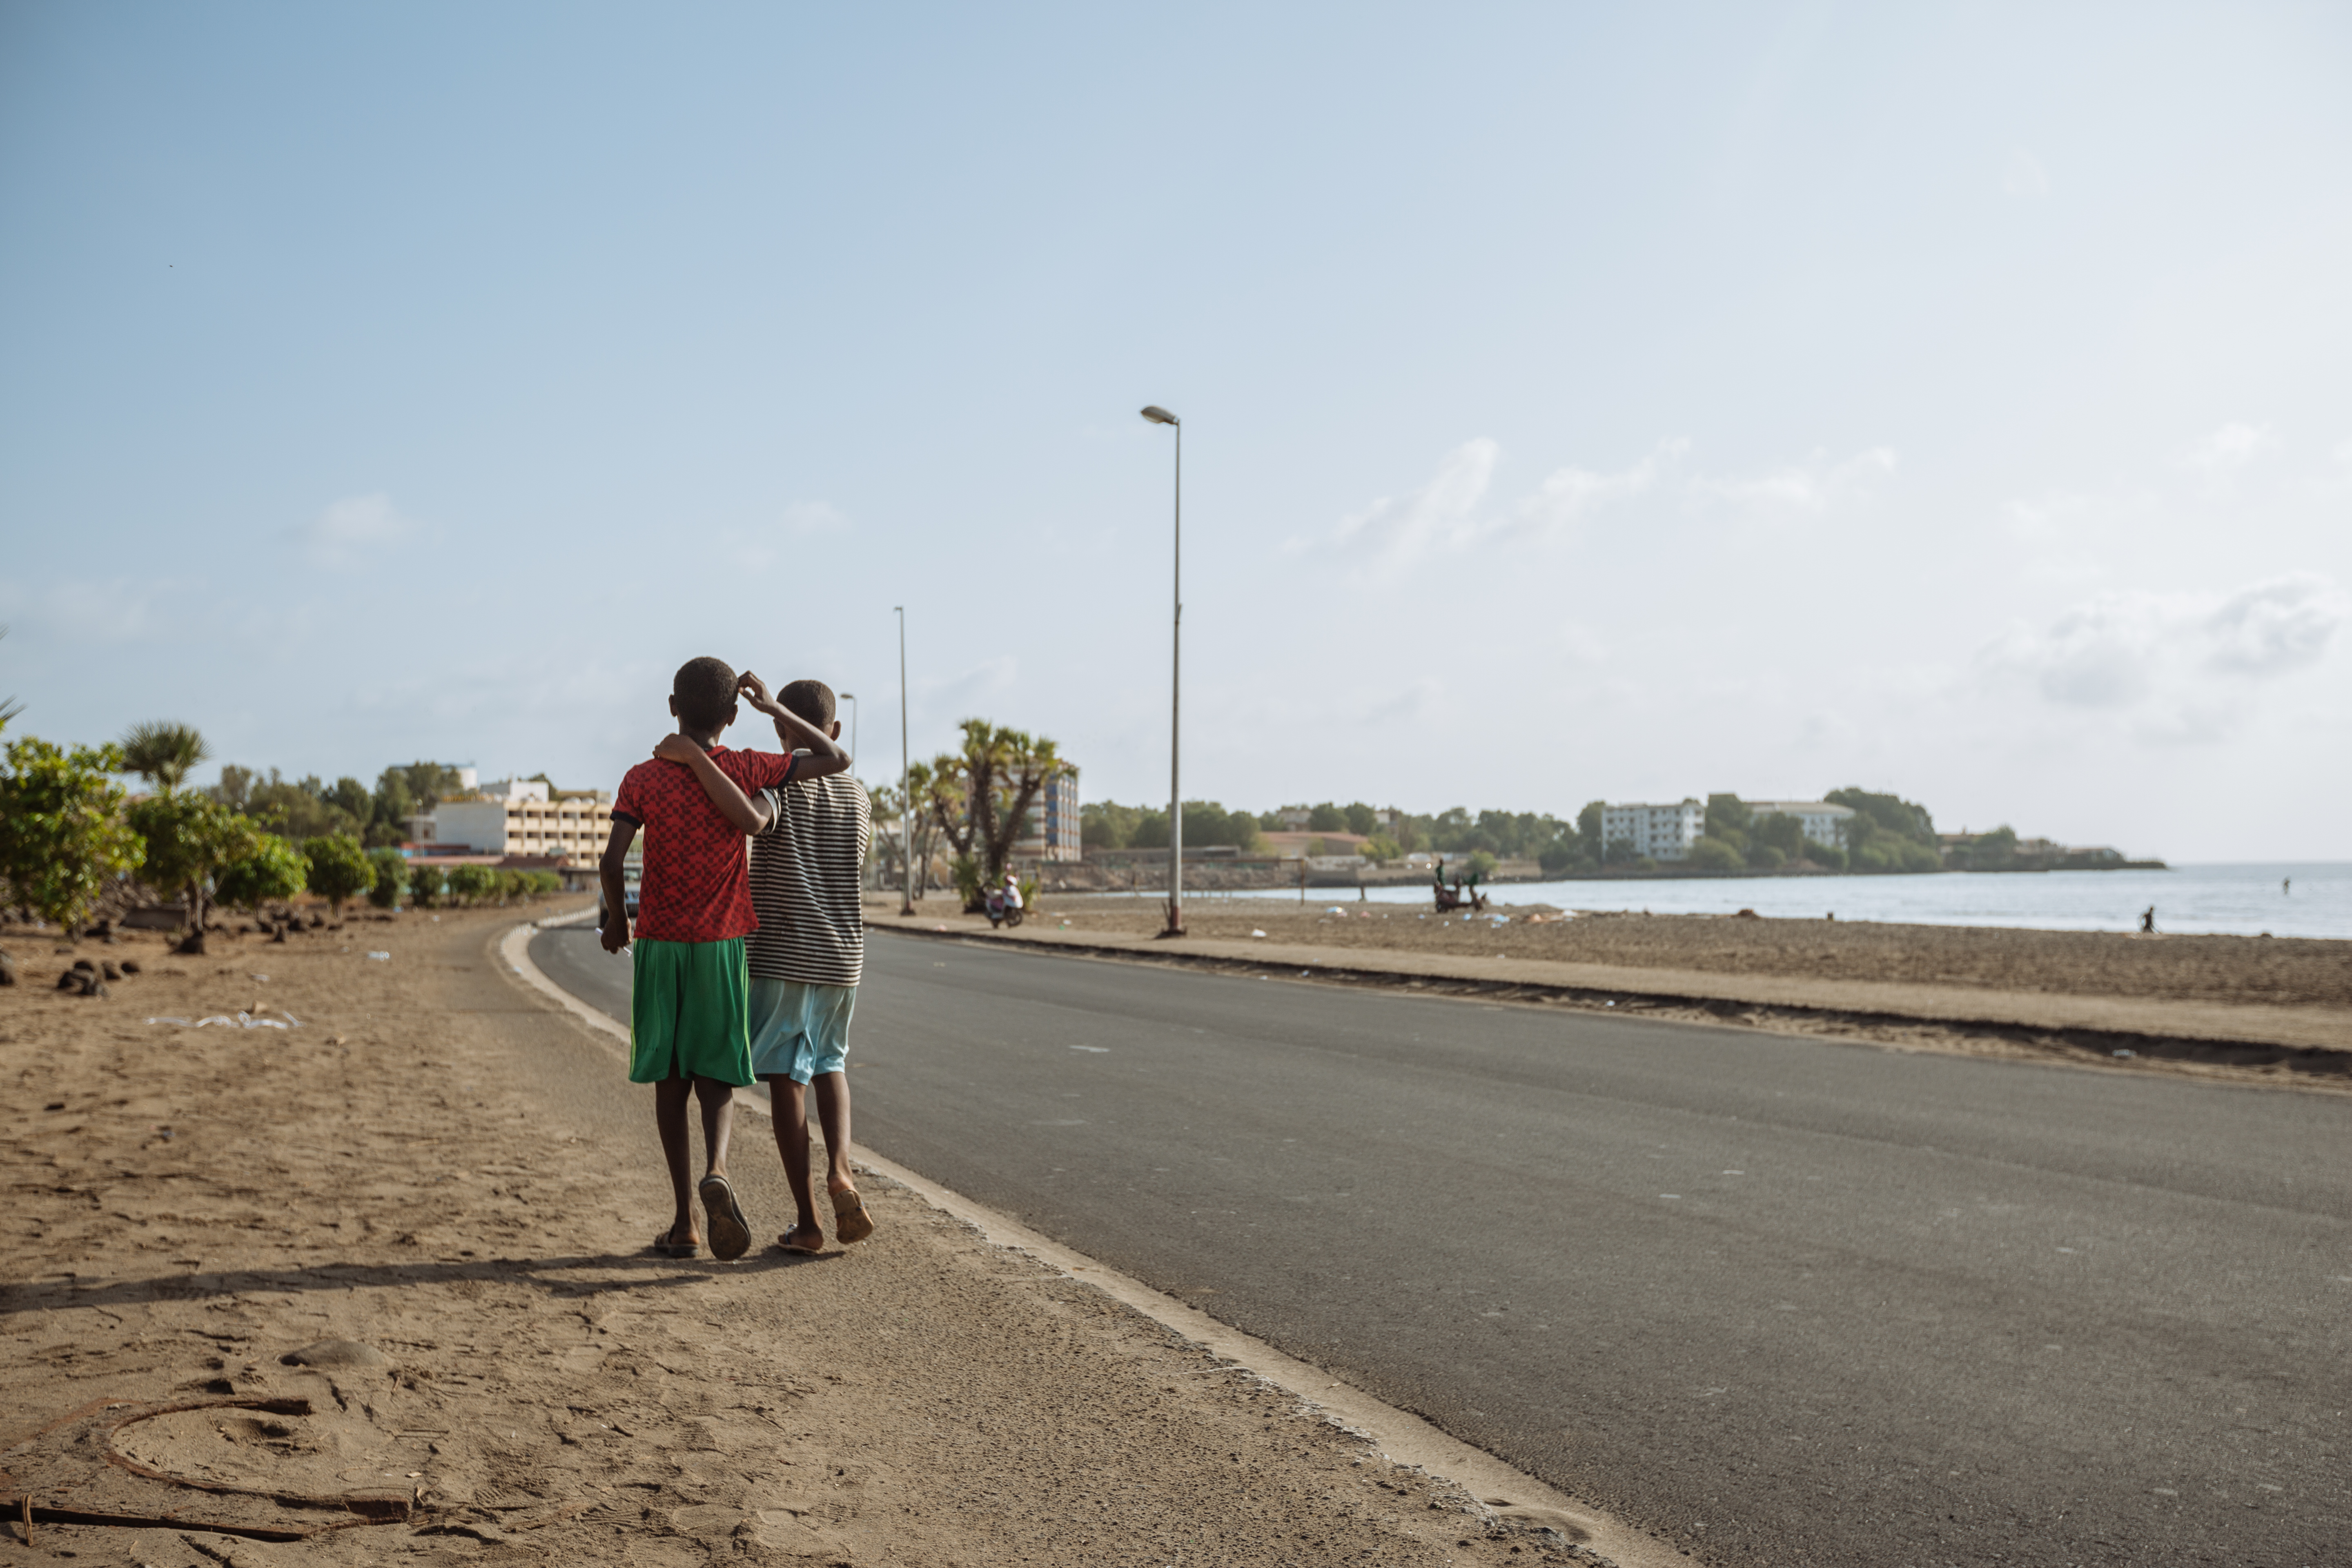 Djibouti Works to Assist Street Children, Beginning With a Study on Their Needs: IOM Report